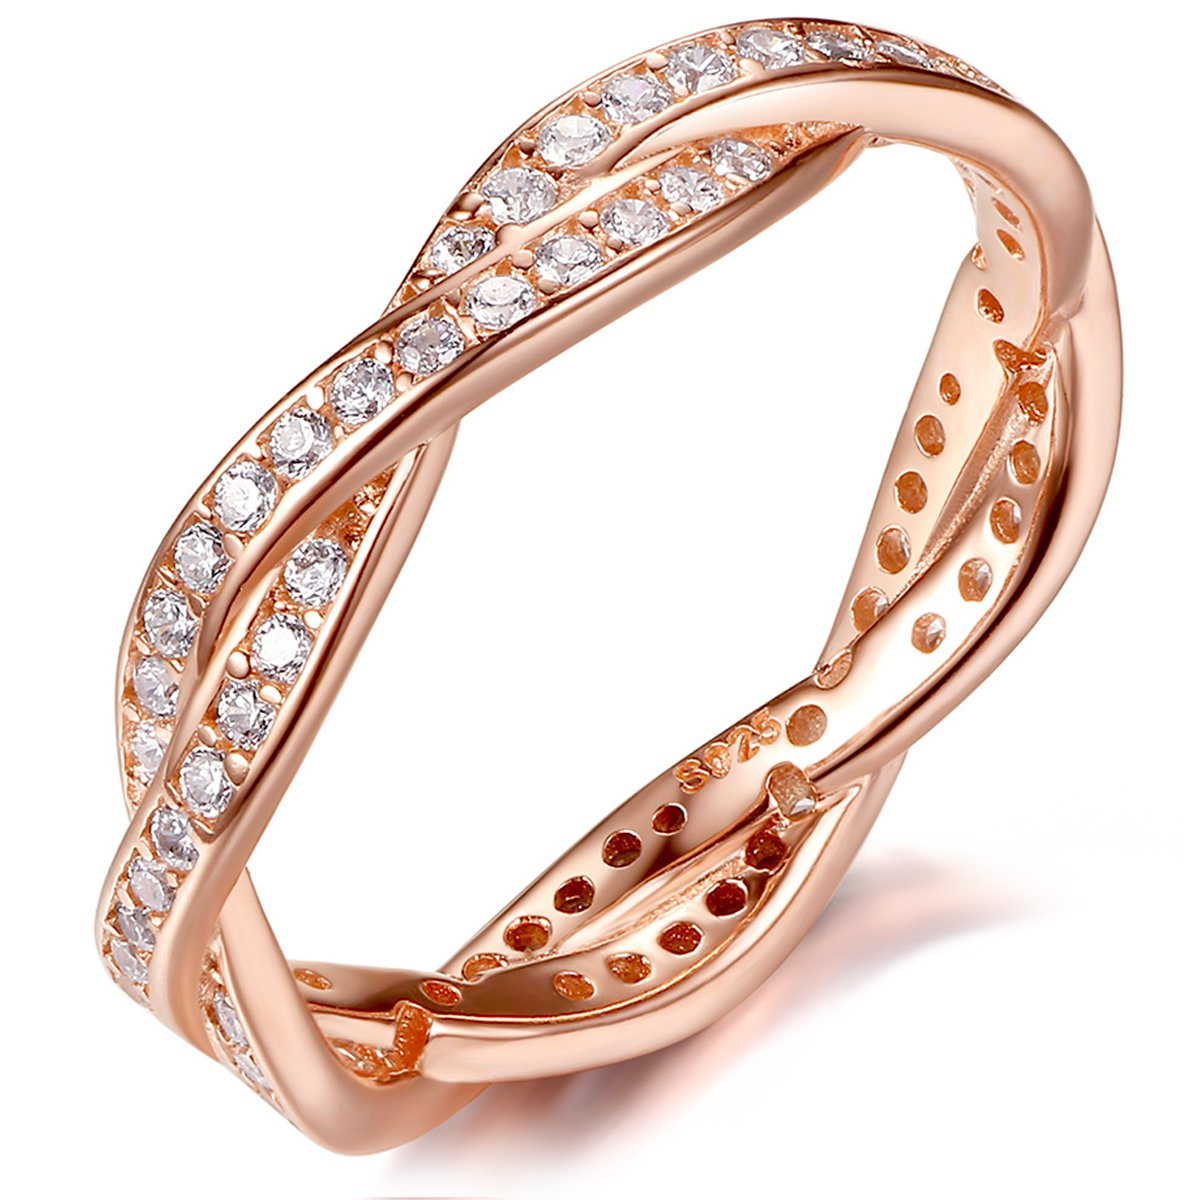 Presentski 925 Sterling Silver Rose Gold-Plated Engagement Wedding Rings  with Cubic Zirconia,Promise Rings for her